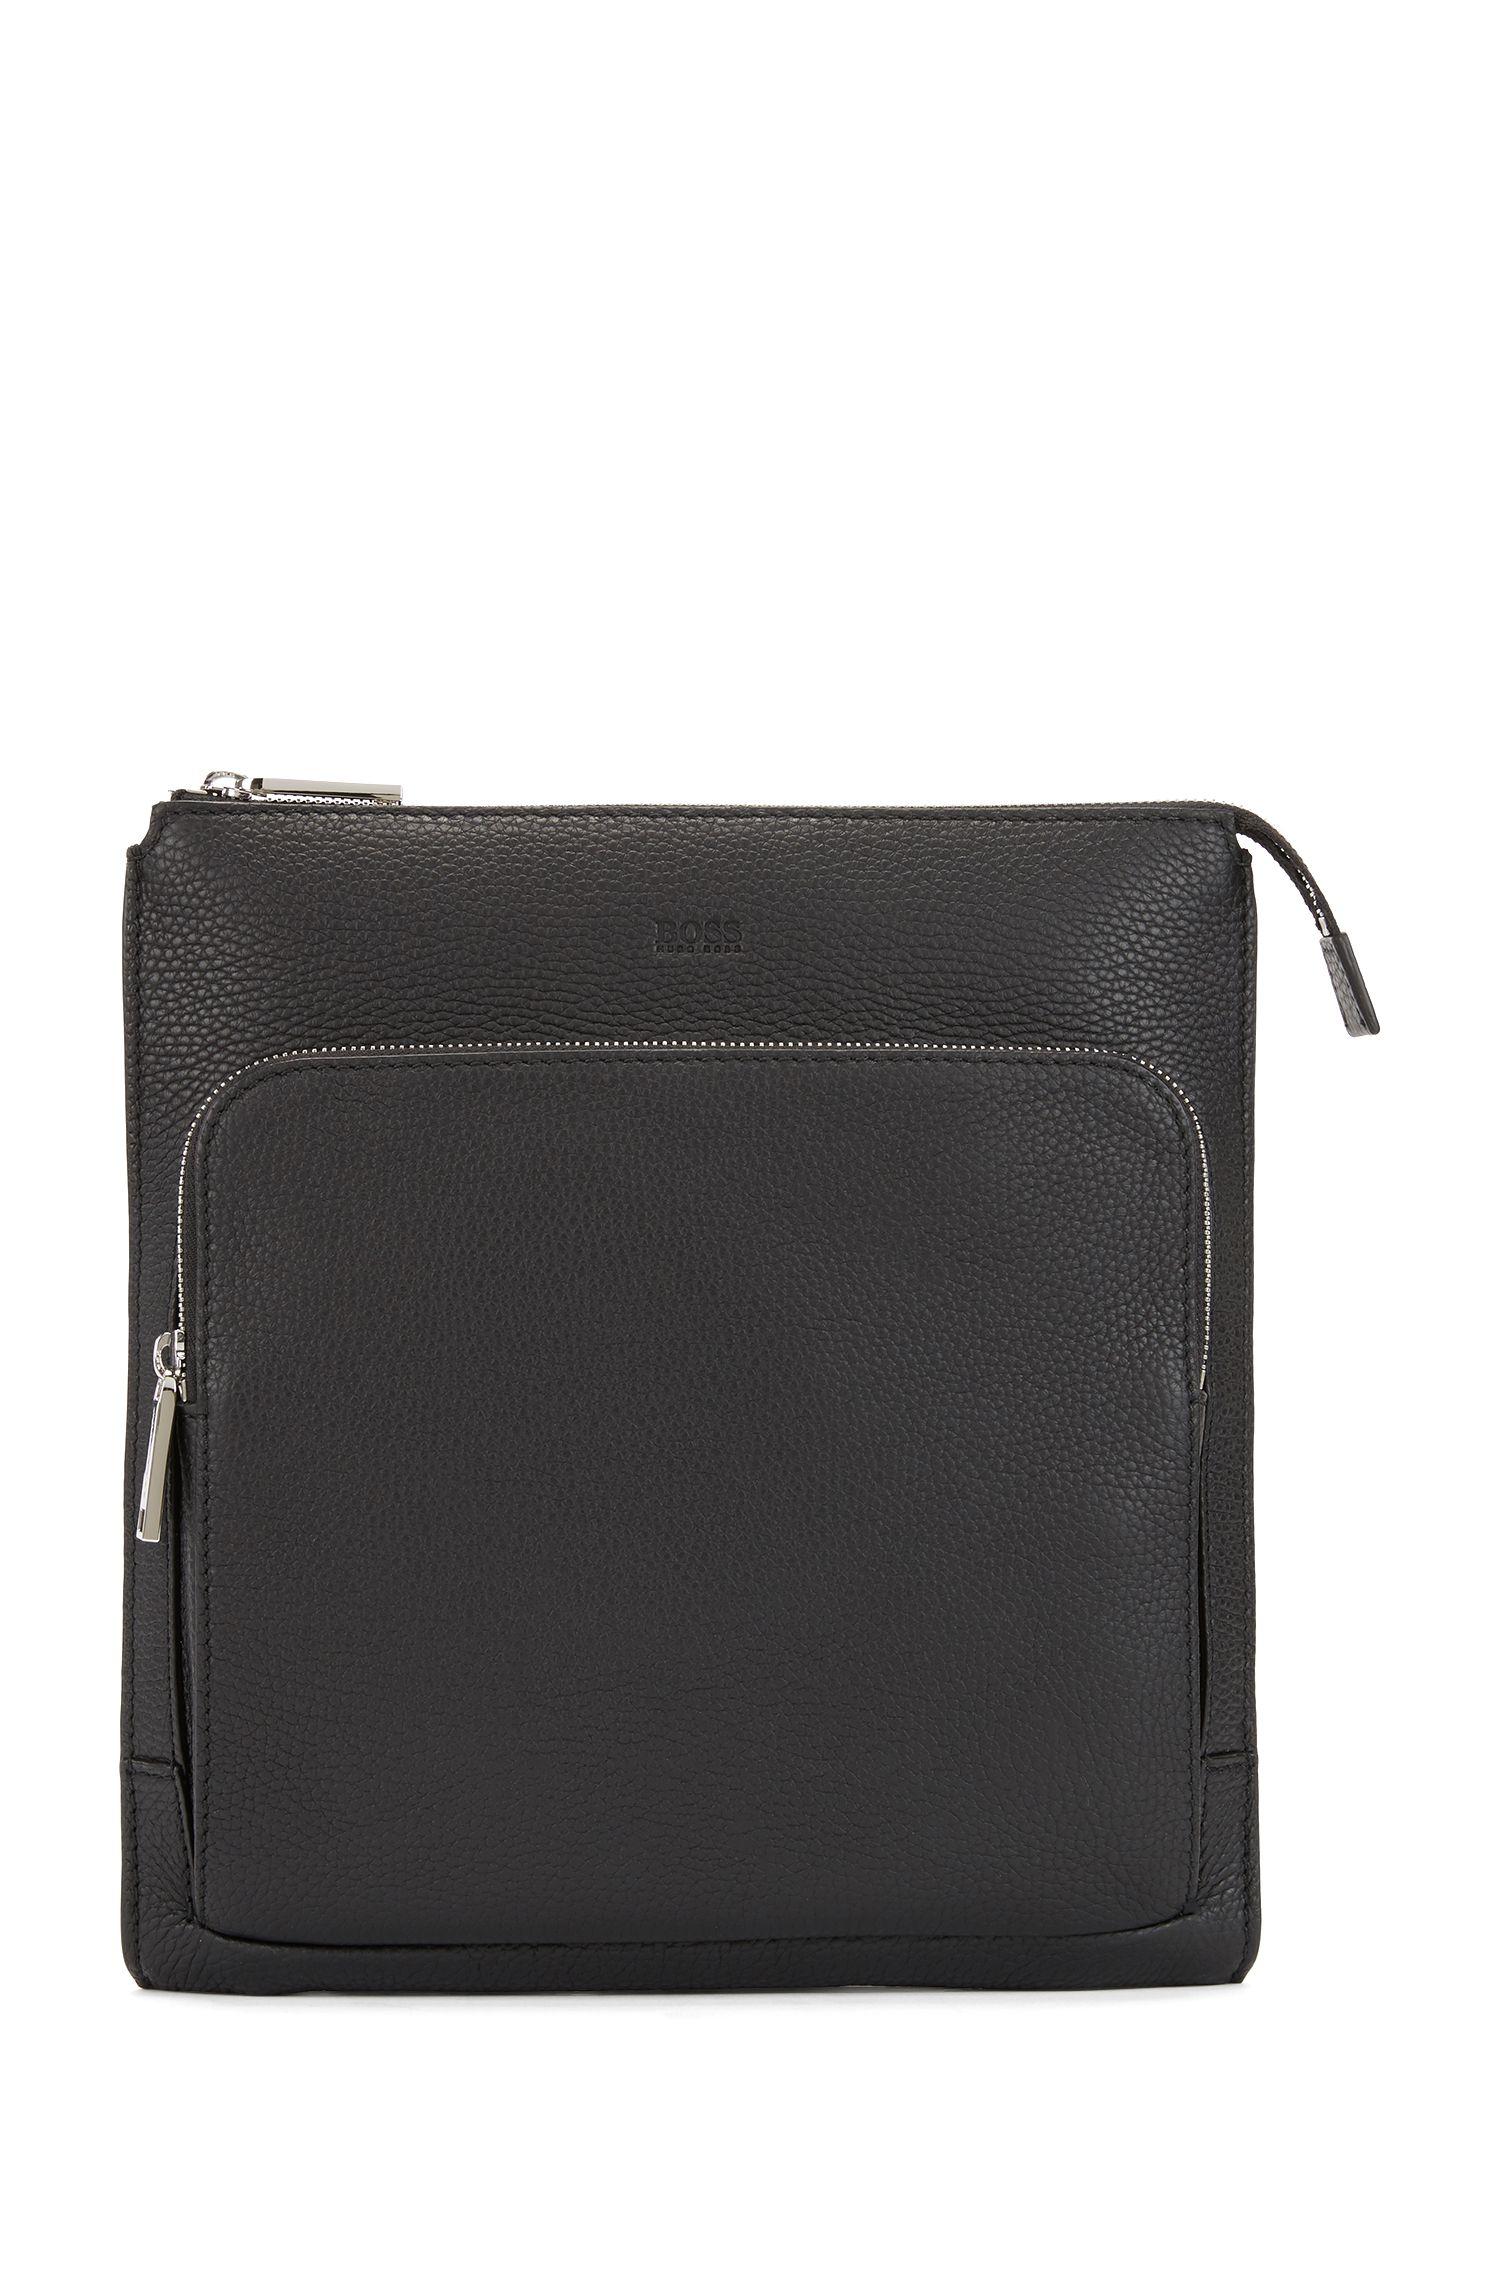 Envelope bag in grainy Italian leather with embossed logo, Black